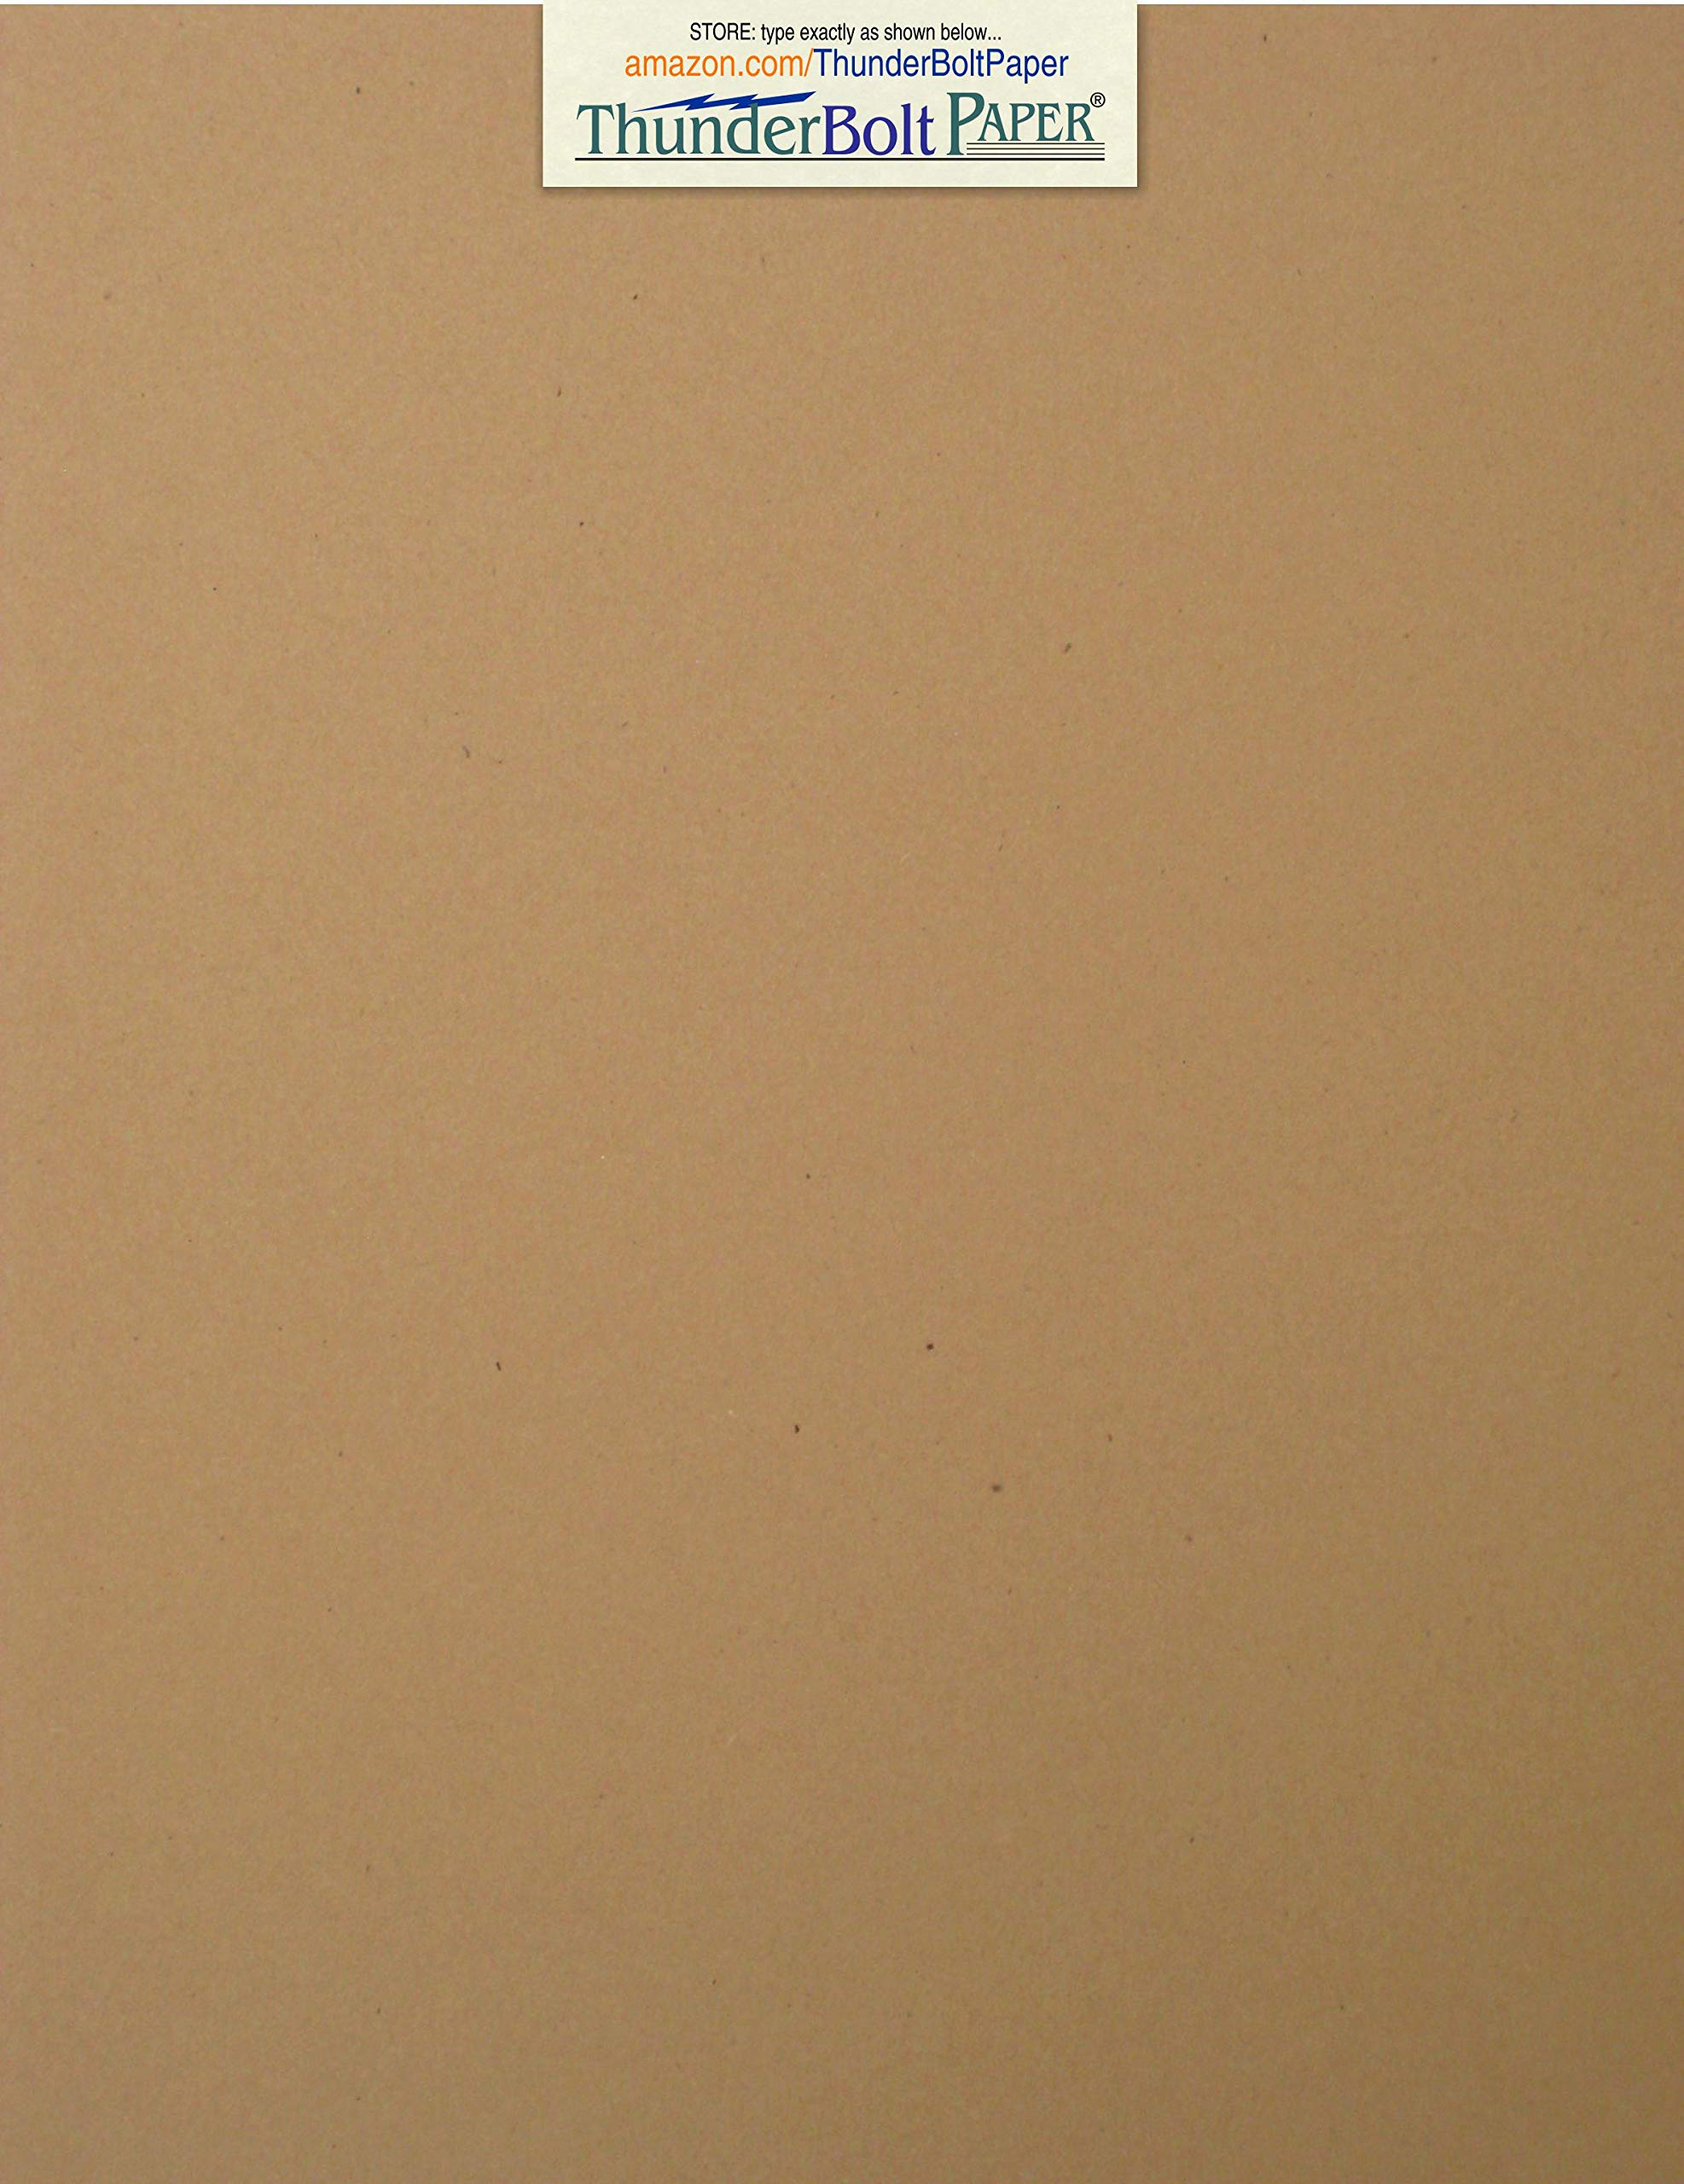 500 Brown Kraft Fiber 28/70# Text (NOT card/cover) Paper Sheets - 8.5'' X 11'' - 70lb/pound Weight (8.5X11 Inches) Standard Letter|Flyer Size - Rich Earthy Color with Natural Fibers - Smooth Finish